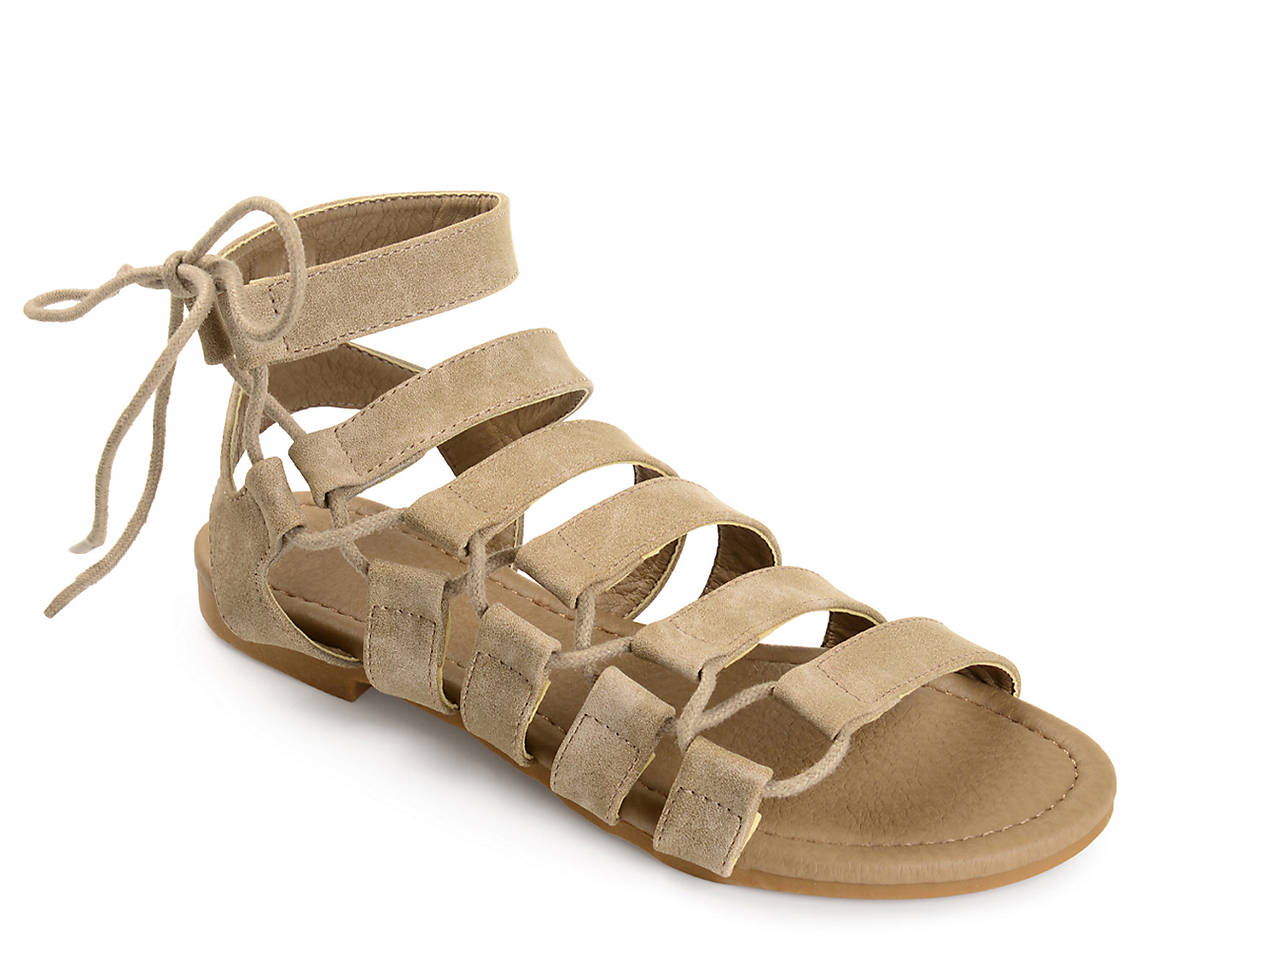 191a4179350 Journee Collection Cleo Gladiator Sandal Women s Shoes